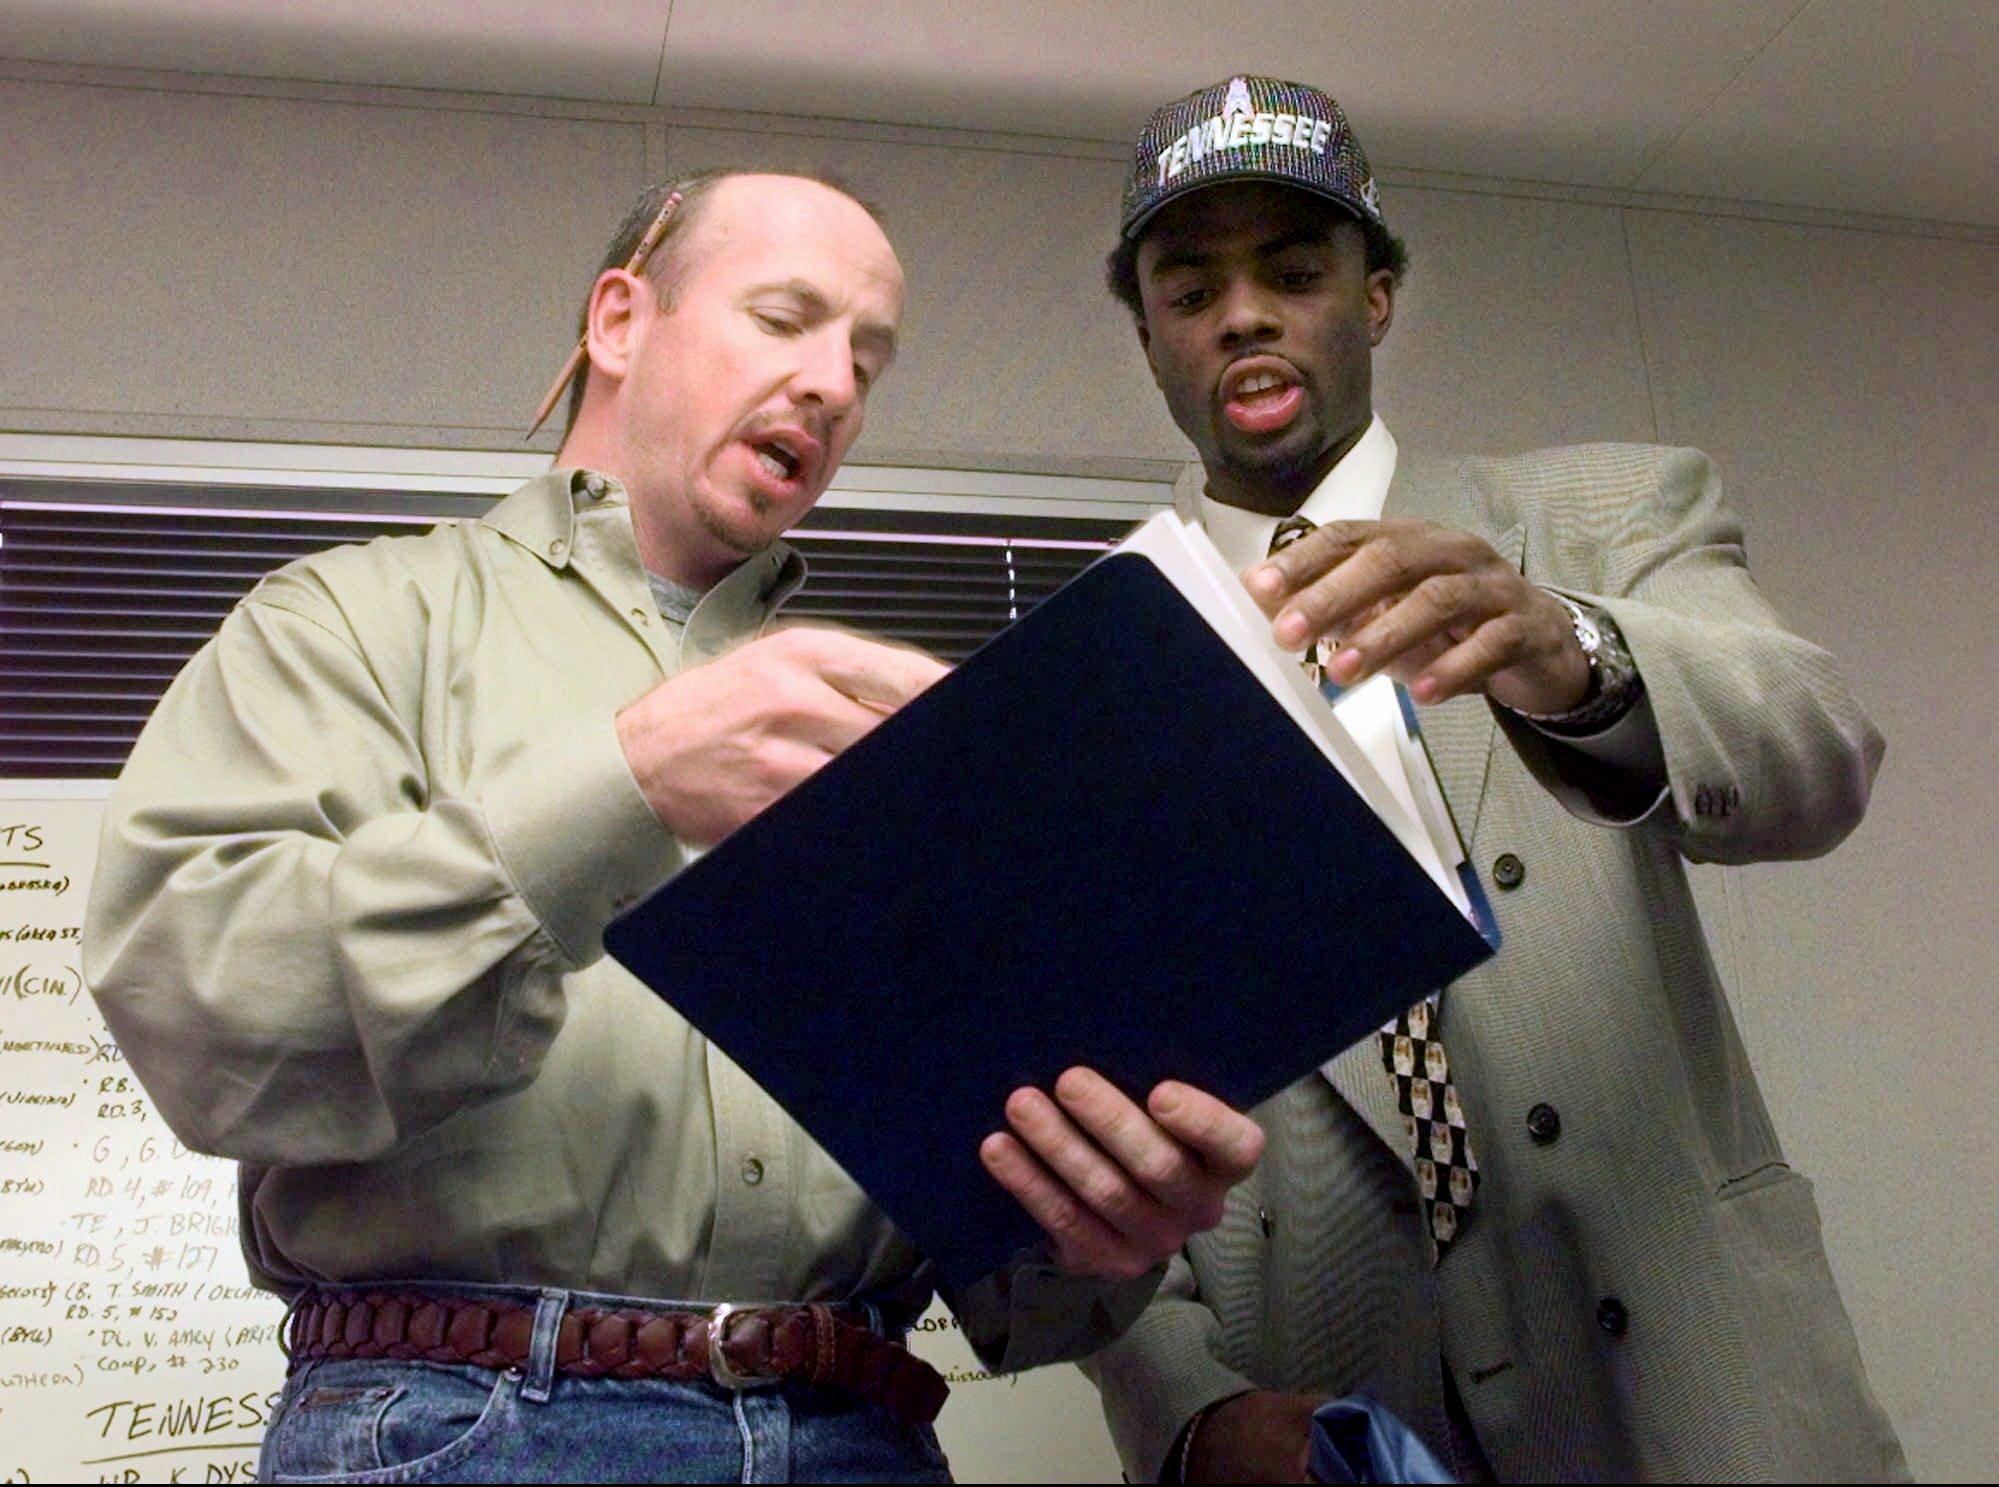 Kevin Dyson, right, the first-round draft pick of the Tennessee Oilers, gets his strength and conditioning book from Oilers strength coach Steve Watterson in Nashville April 19, 1998. Dyson is a wide receiver from Utah.